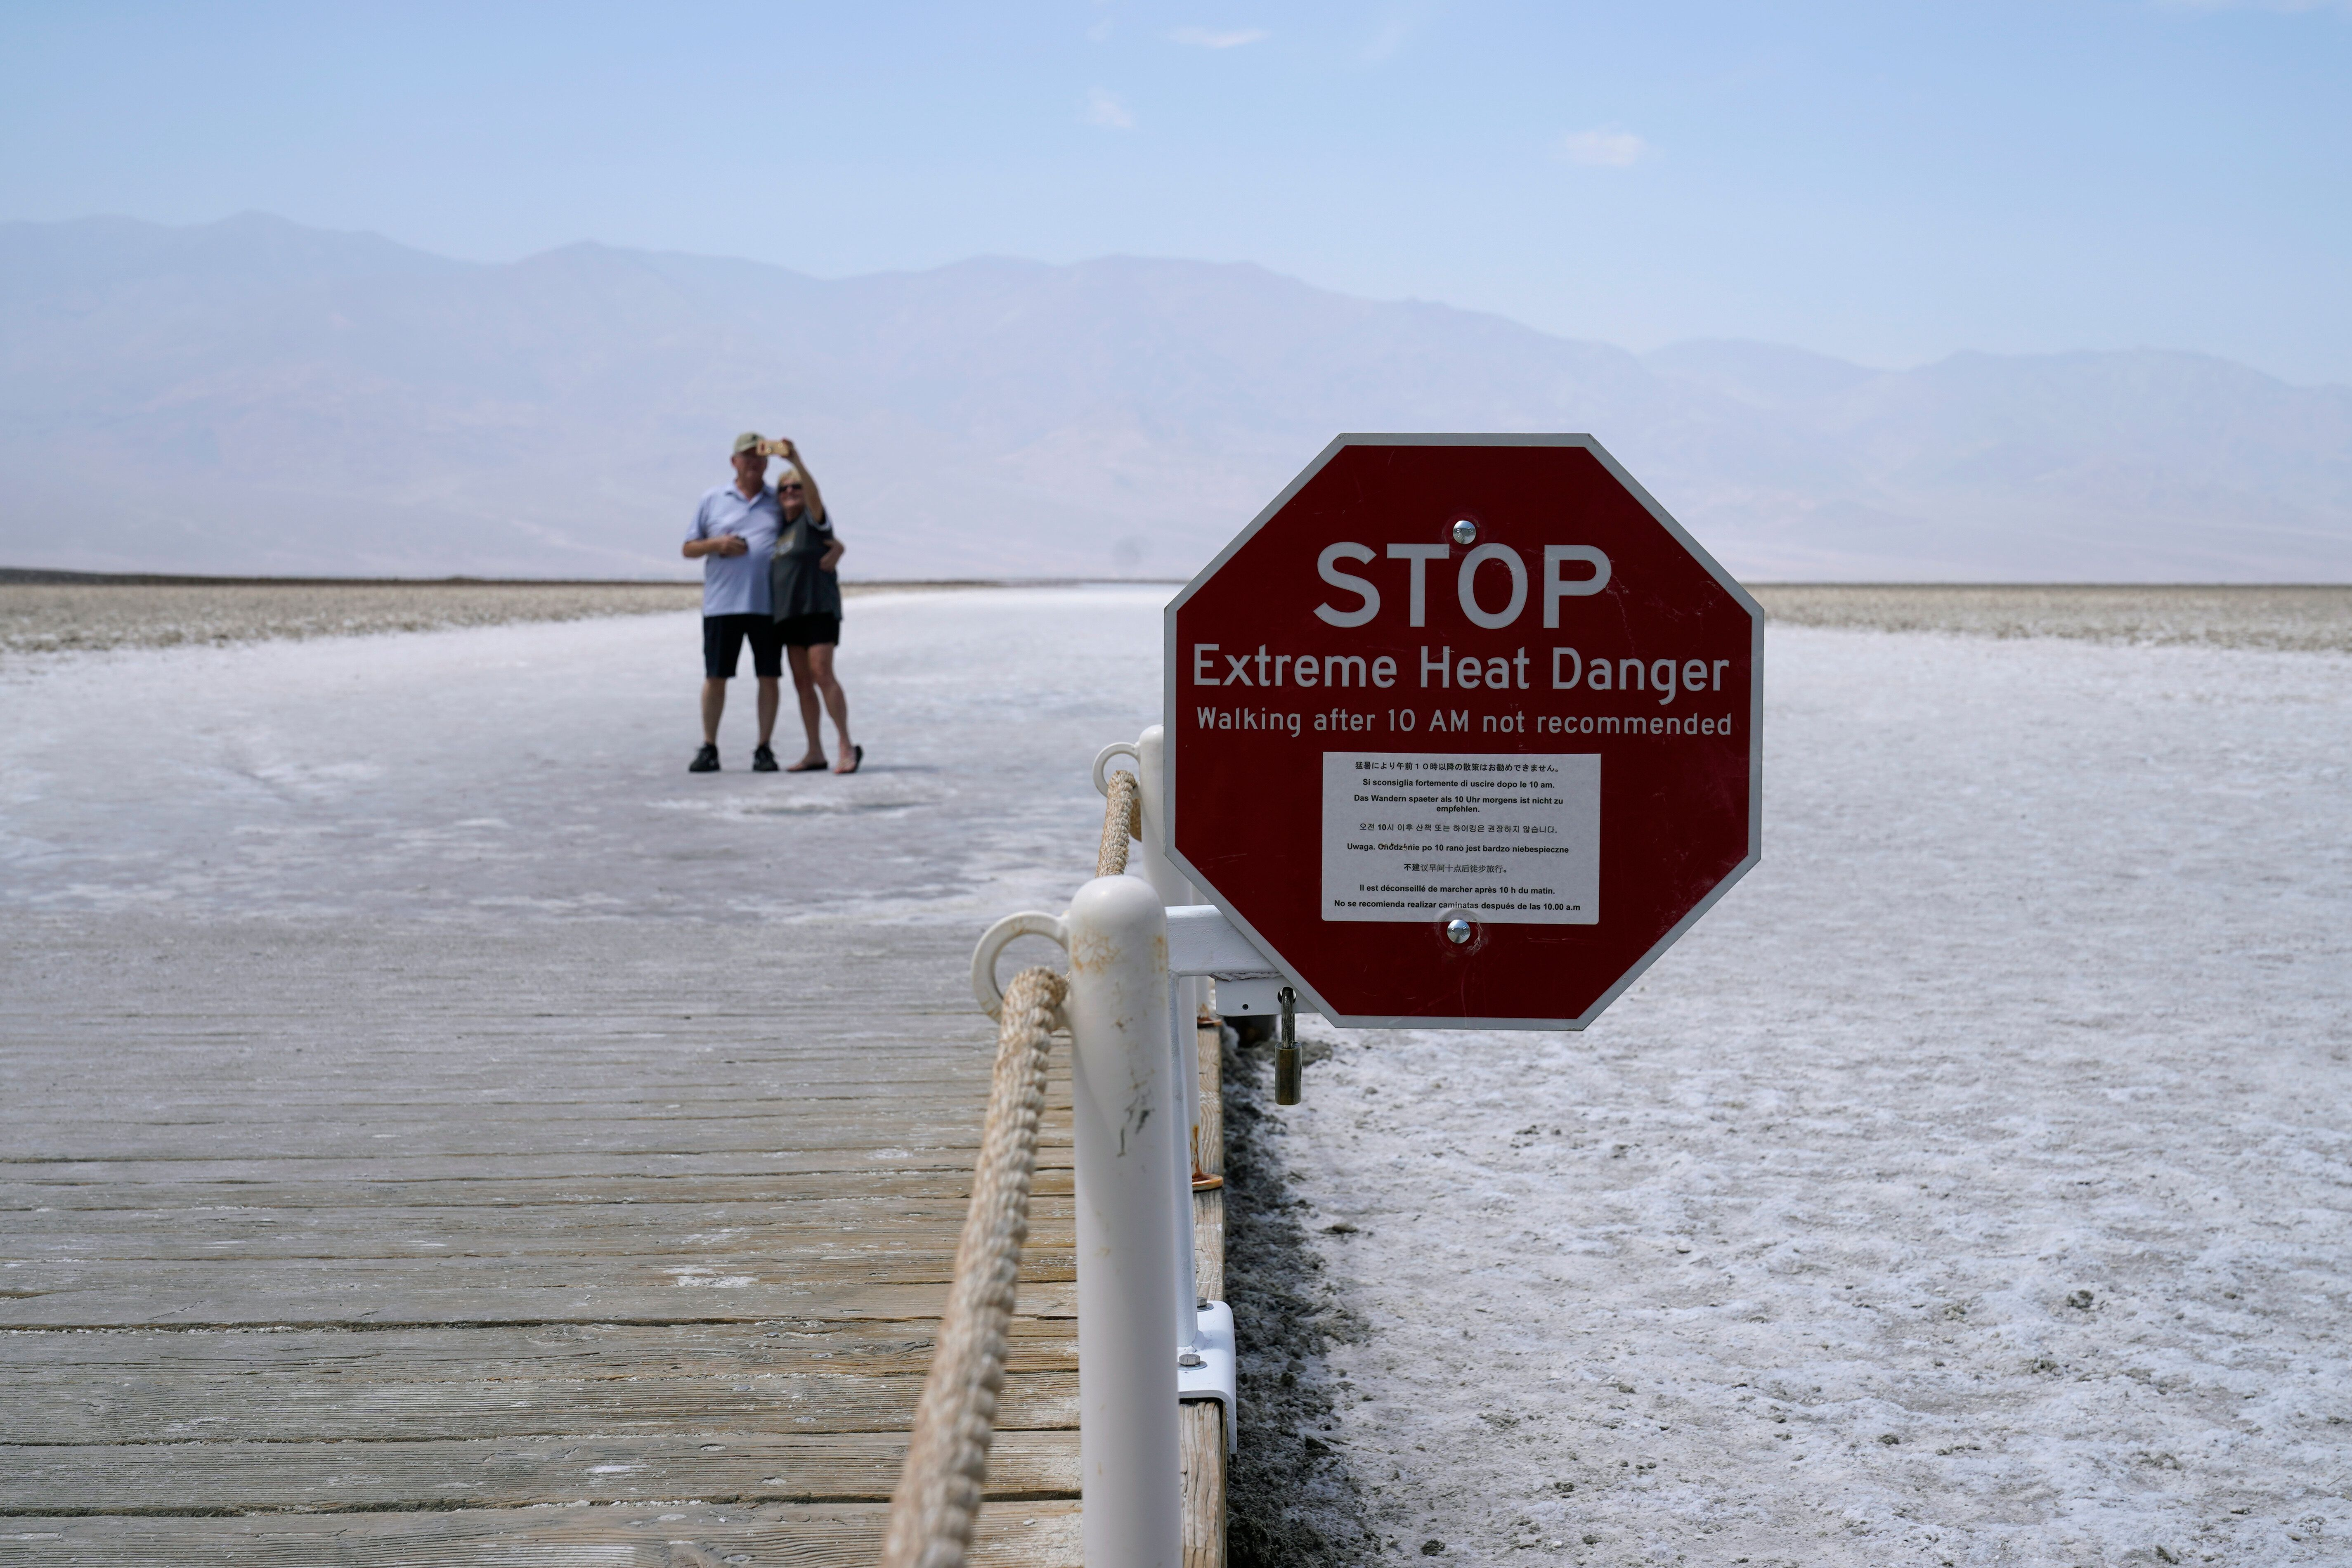 A sign warns of extreme heat danger at Badwater Basin, Monday, Aug. 17, 2020, in Death Valley National Park, Calif. (AP Photo